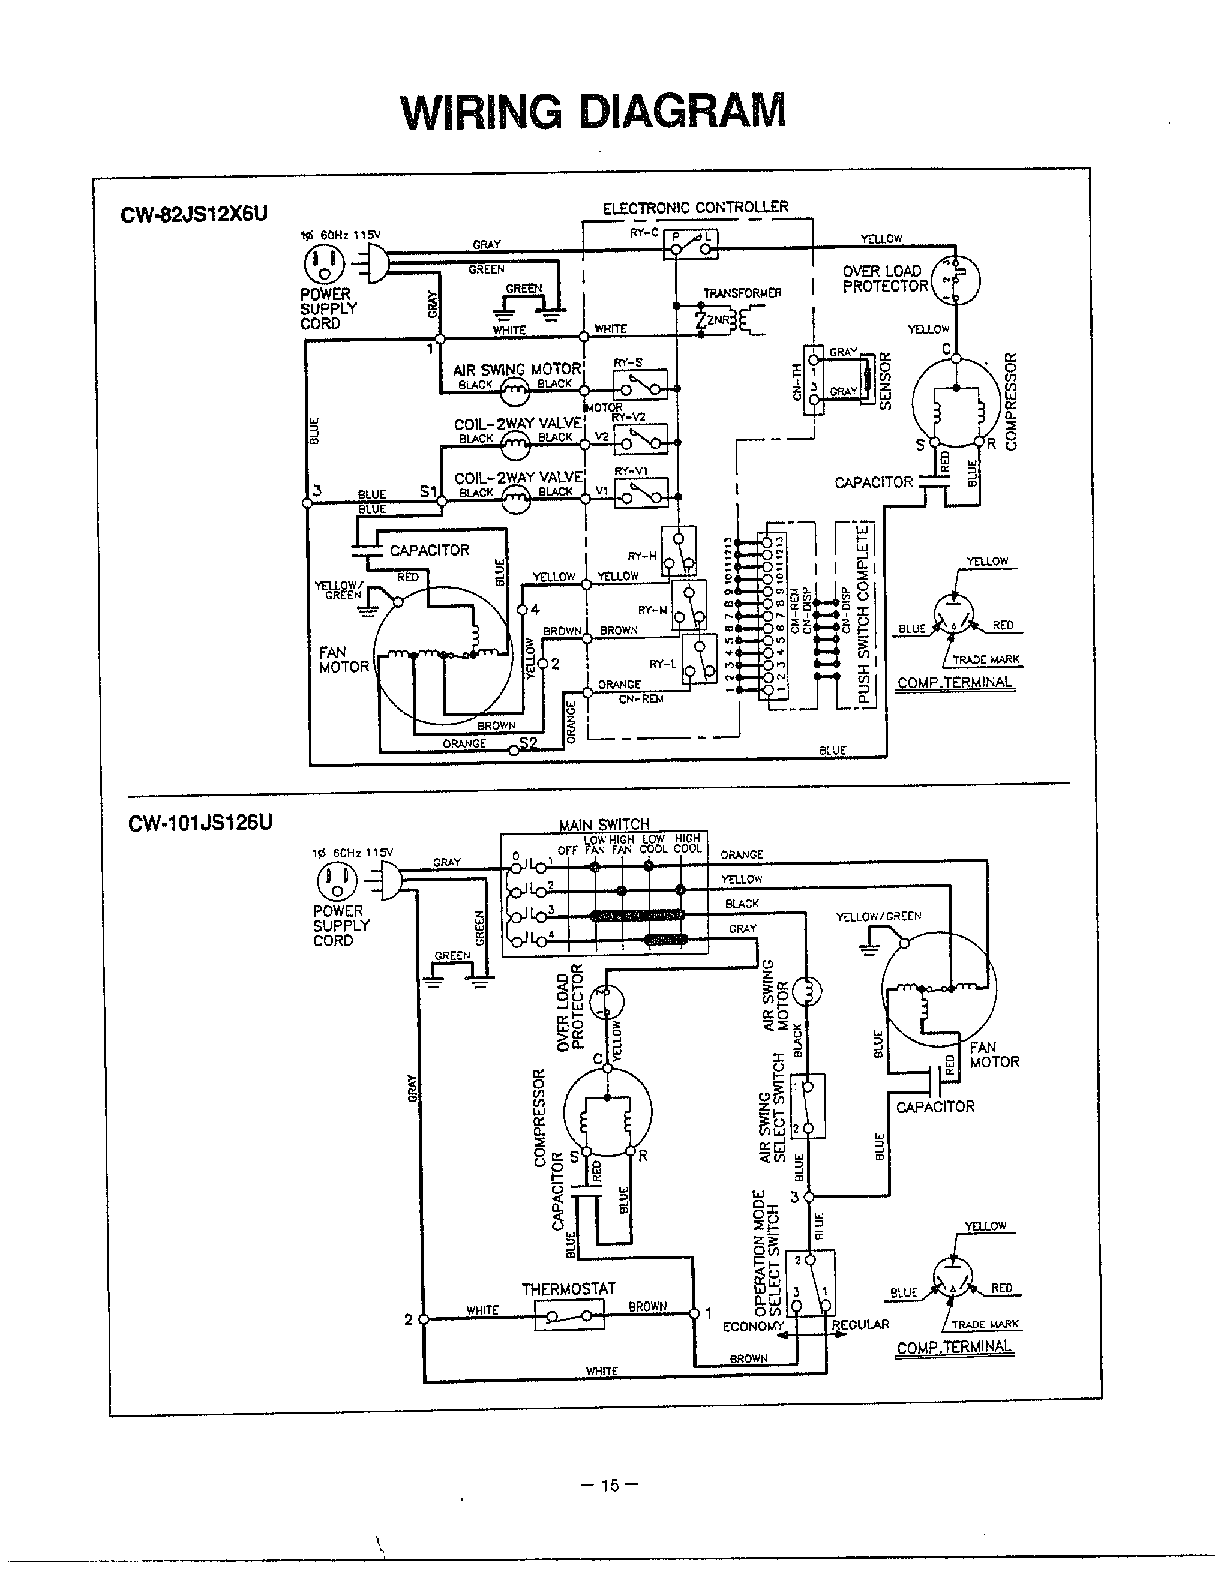 Panasonic Cn-nvd905u Unit Pinout Wiring Diagram